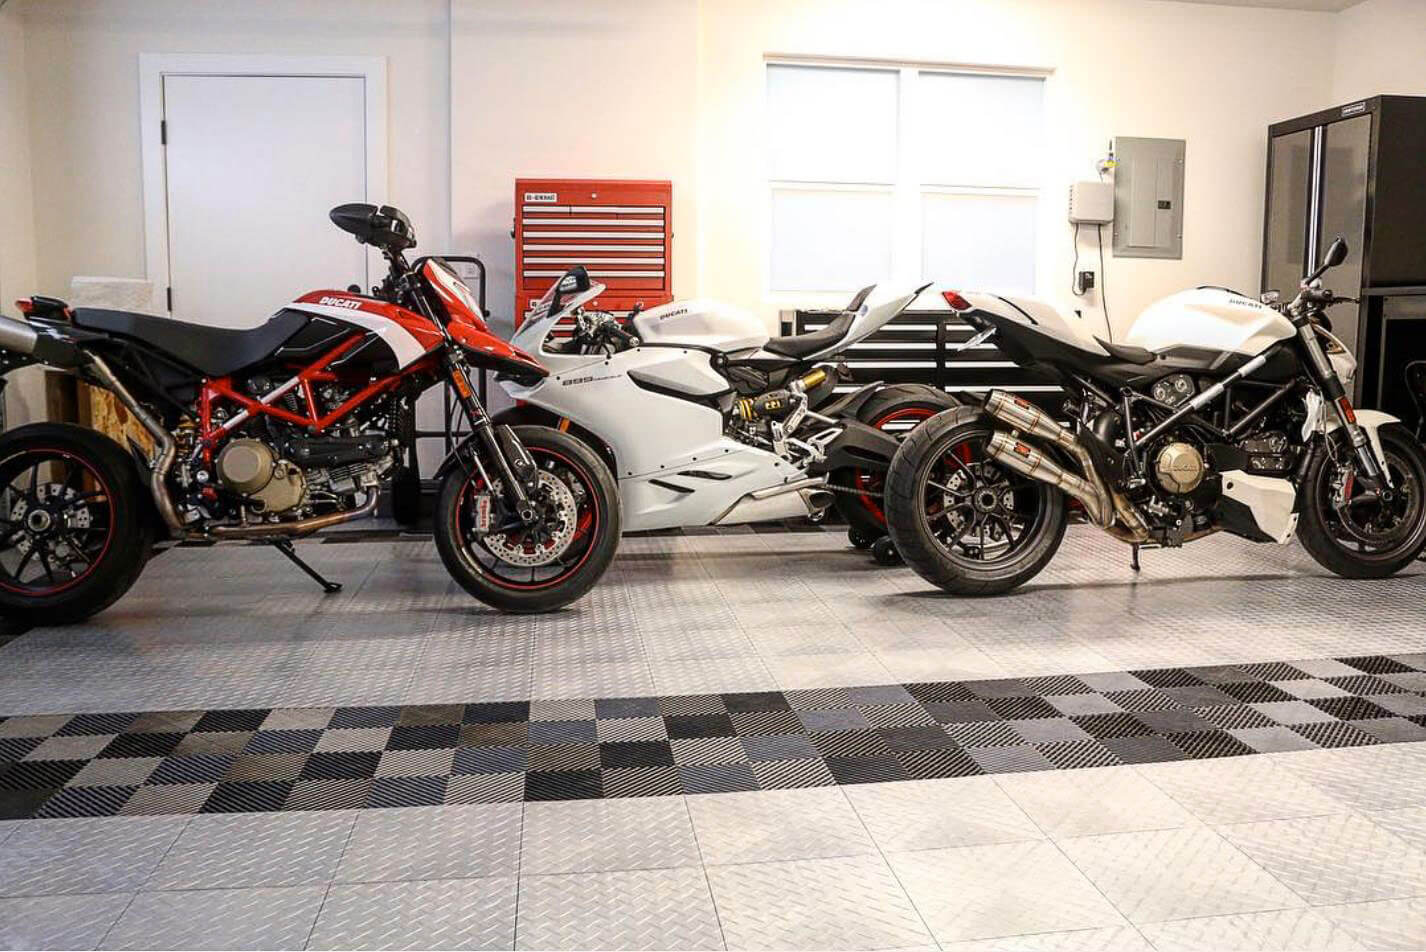 Ducati home garage with RaceDeck Diamond and Free-Flow flooring.